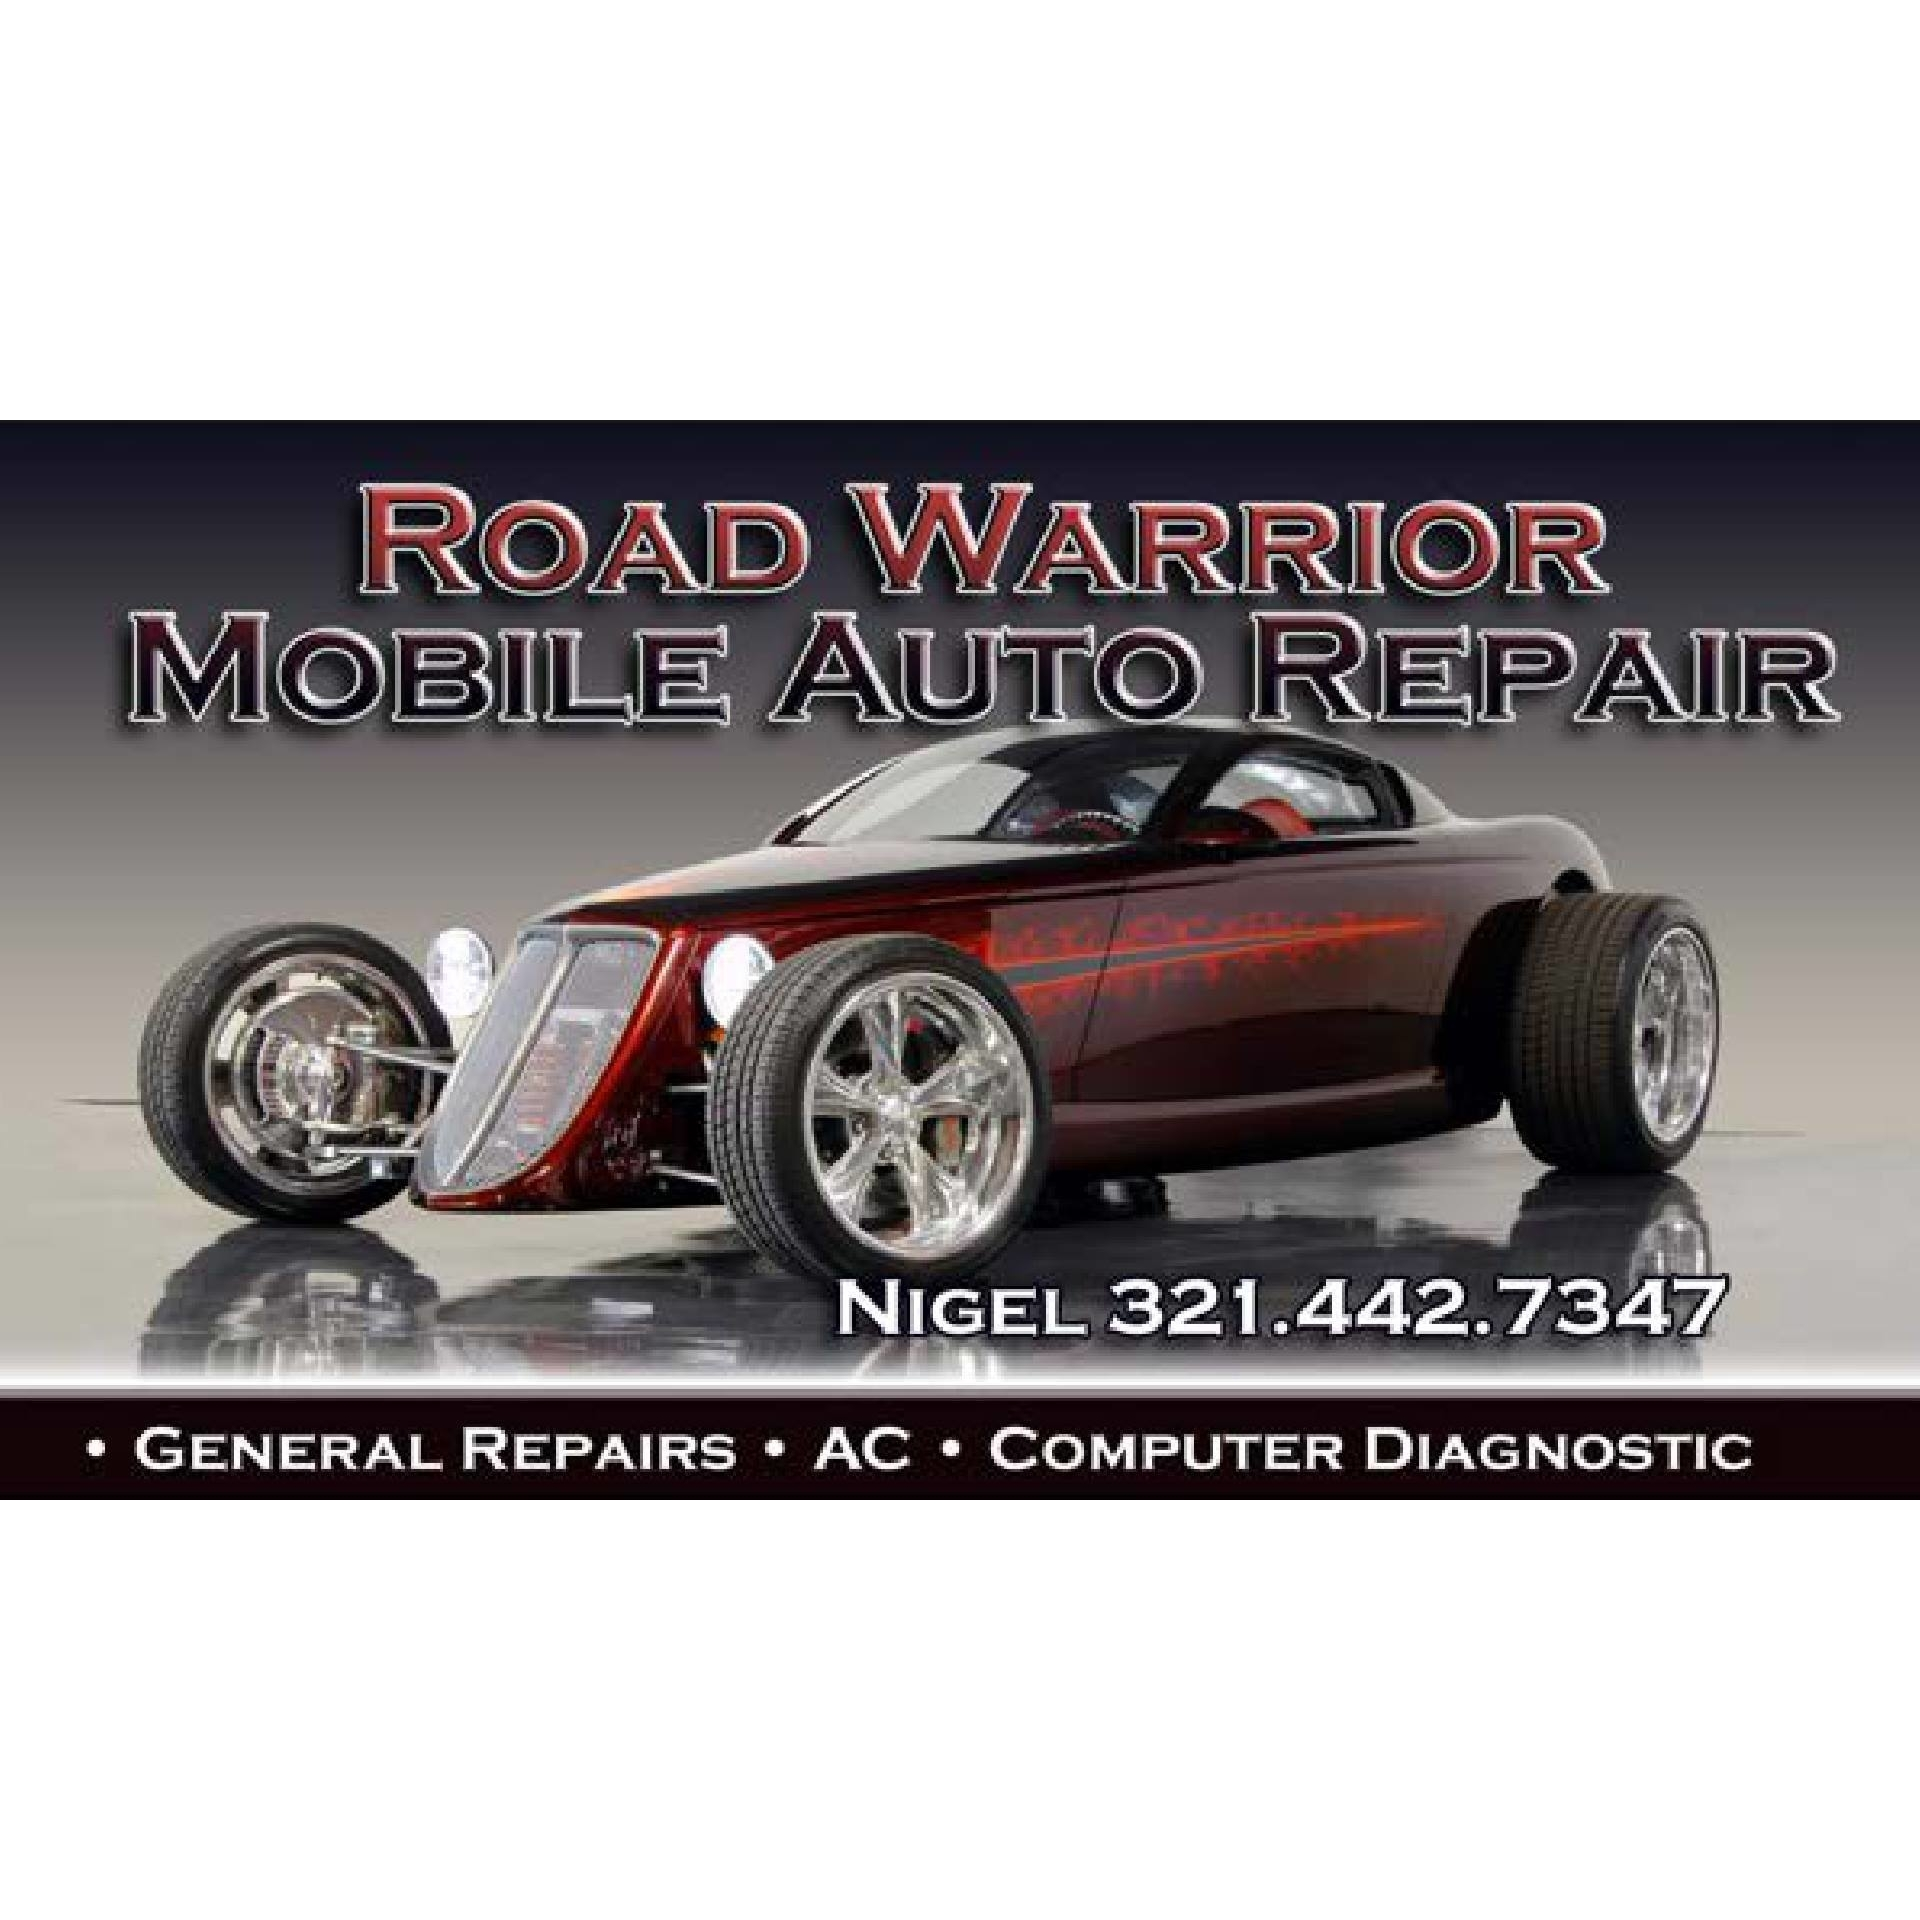 Road Warrior Mobile Auto Repair